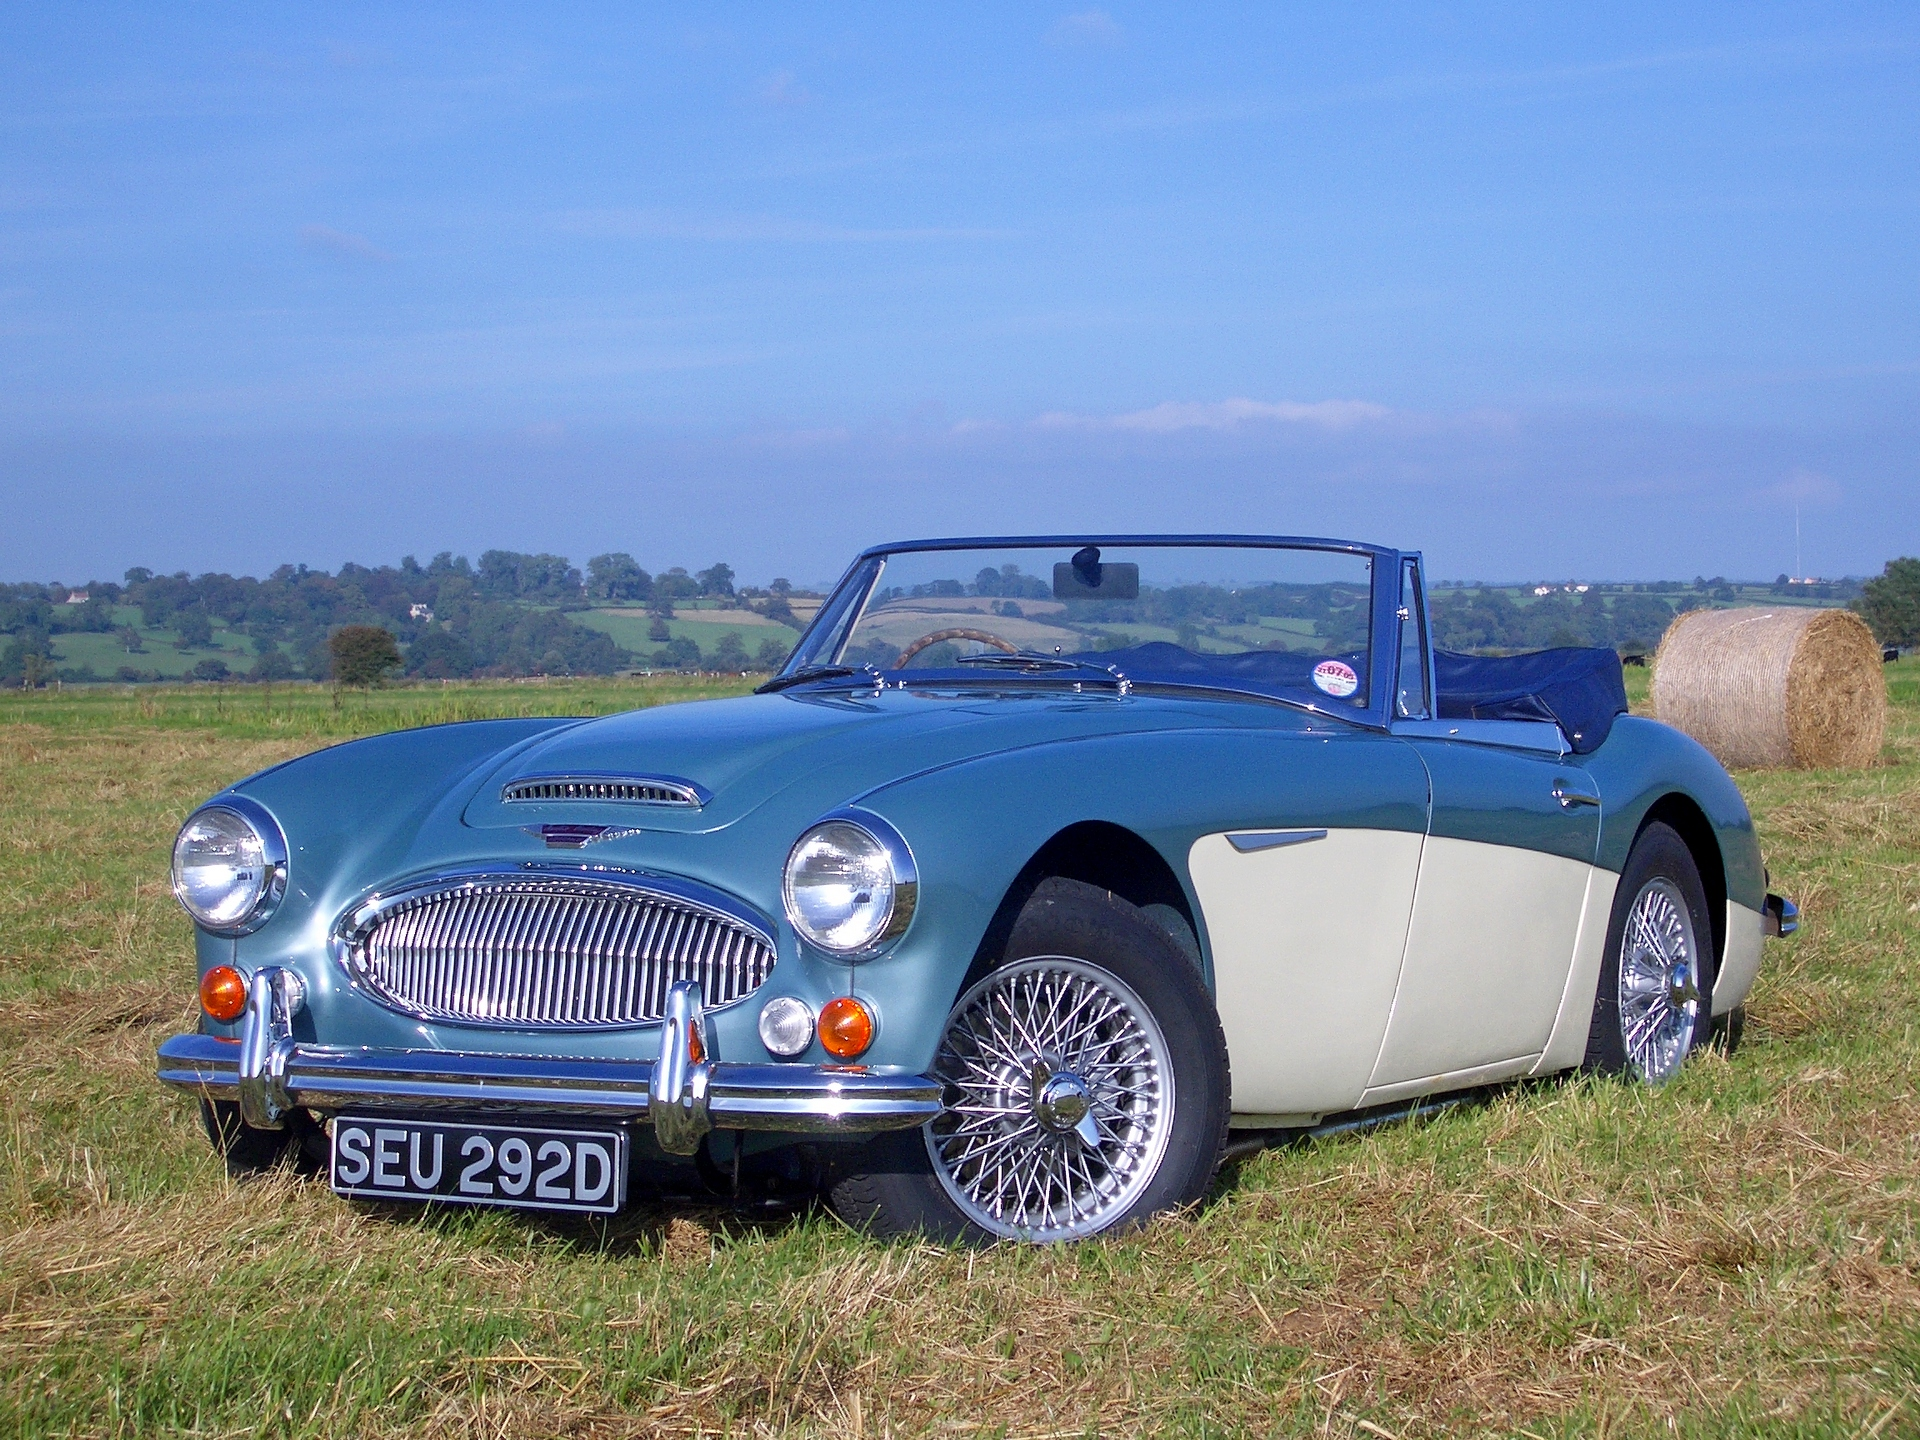 1965 austin healey 3000 mk iii information and photos. Black Bedroom Furniture Sets. Home Design Ideas